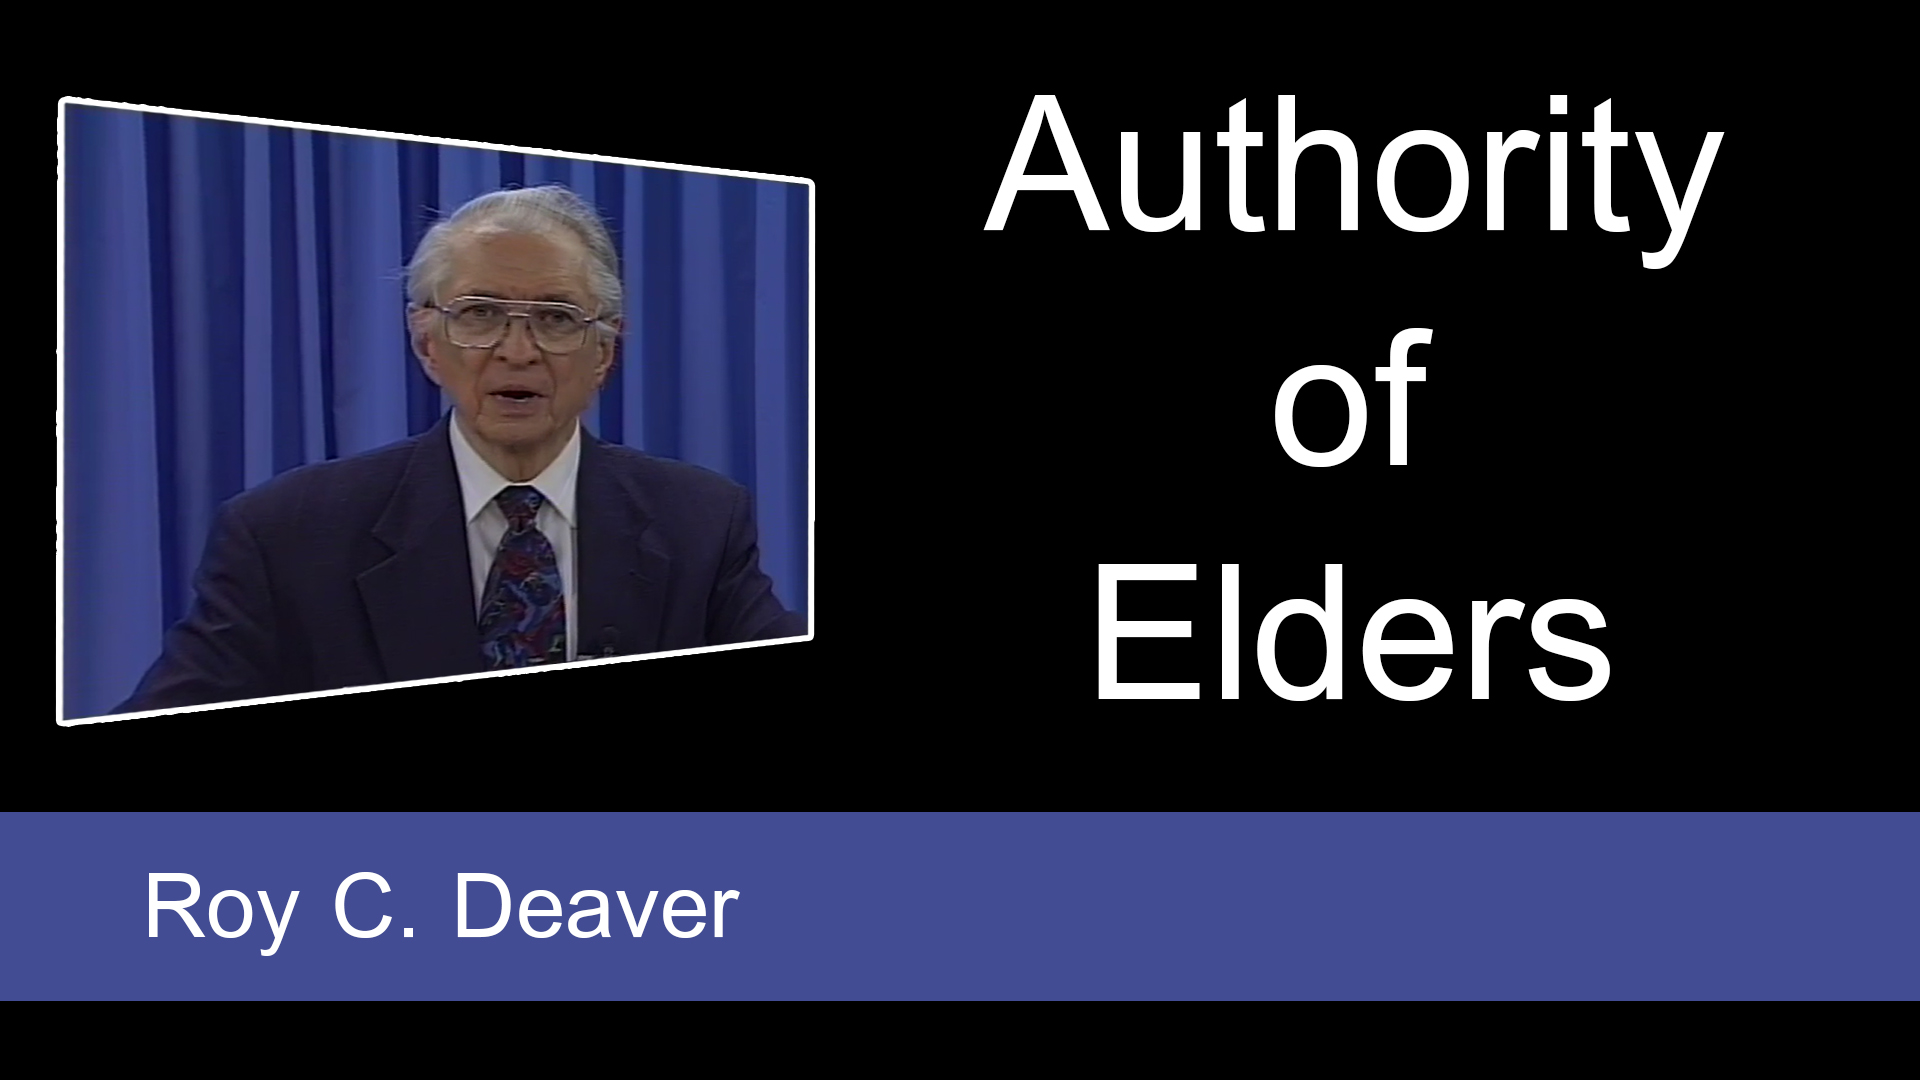 Authority of Elders